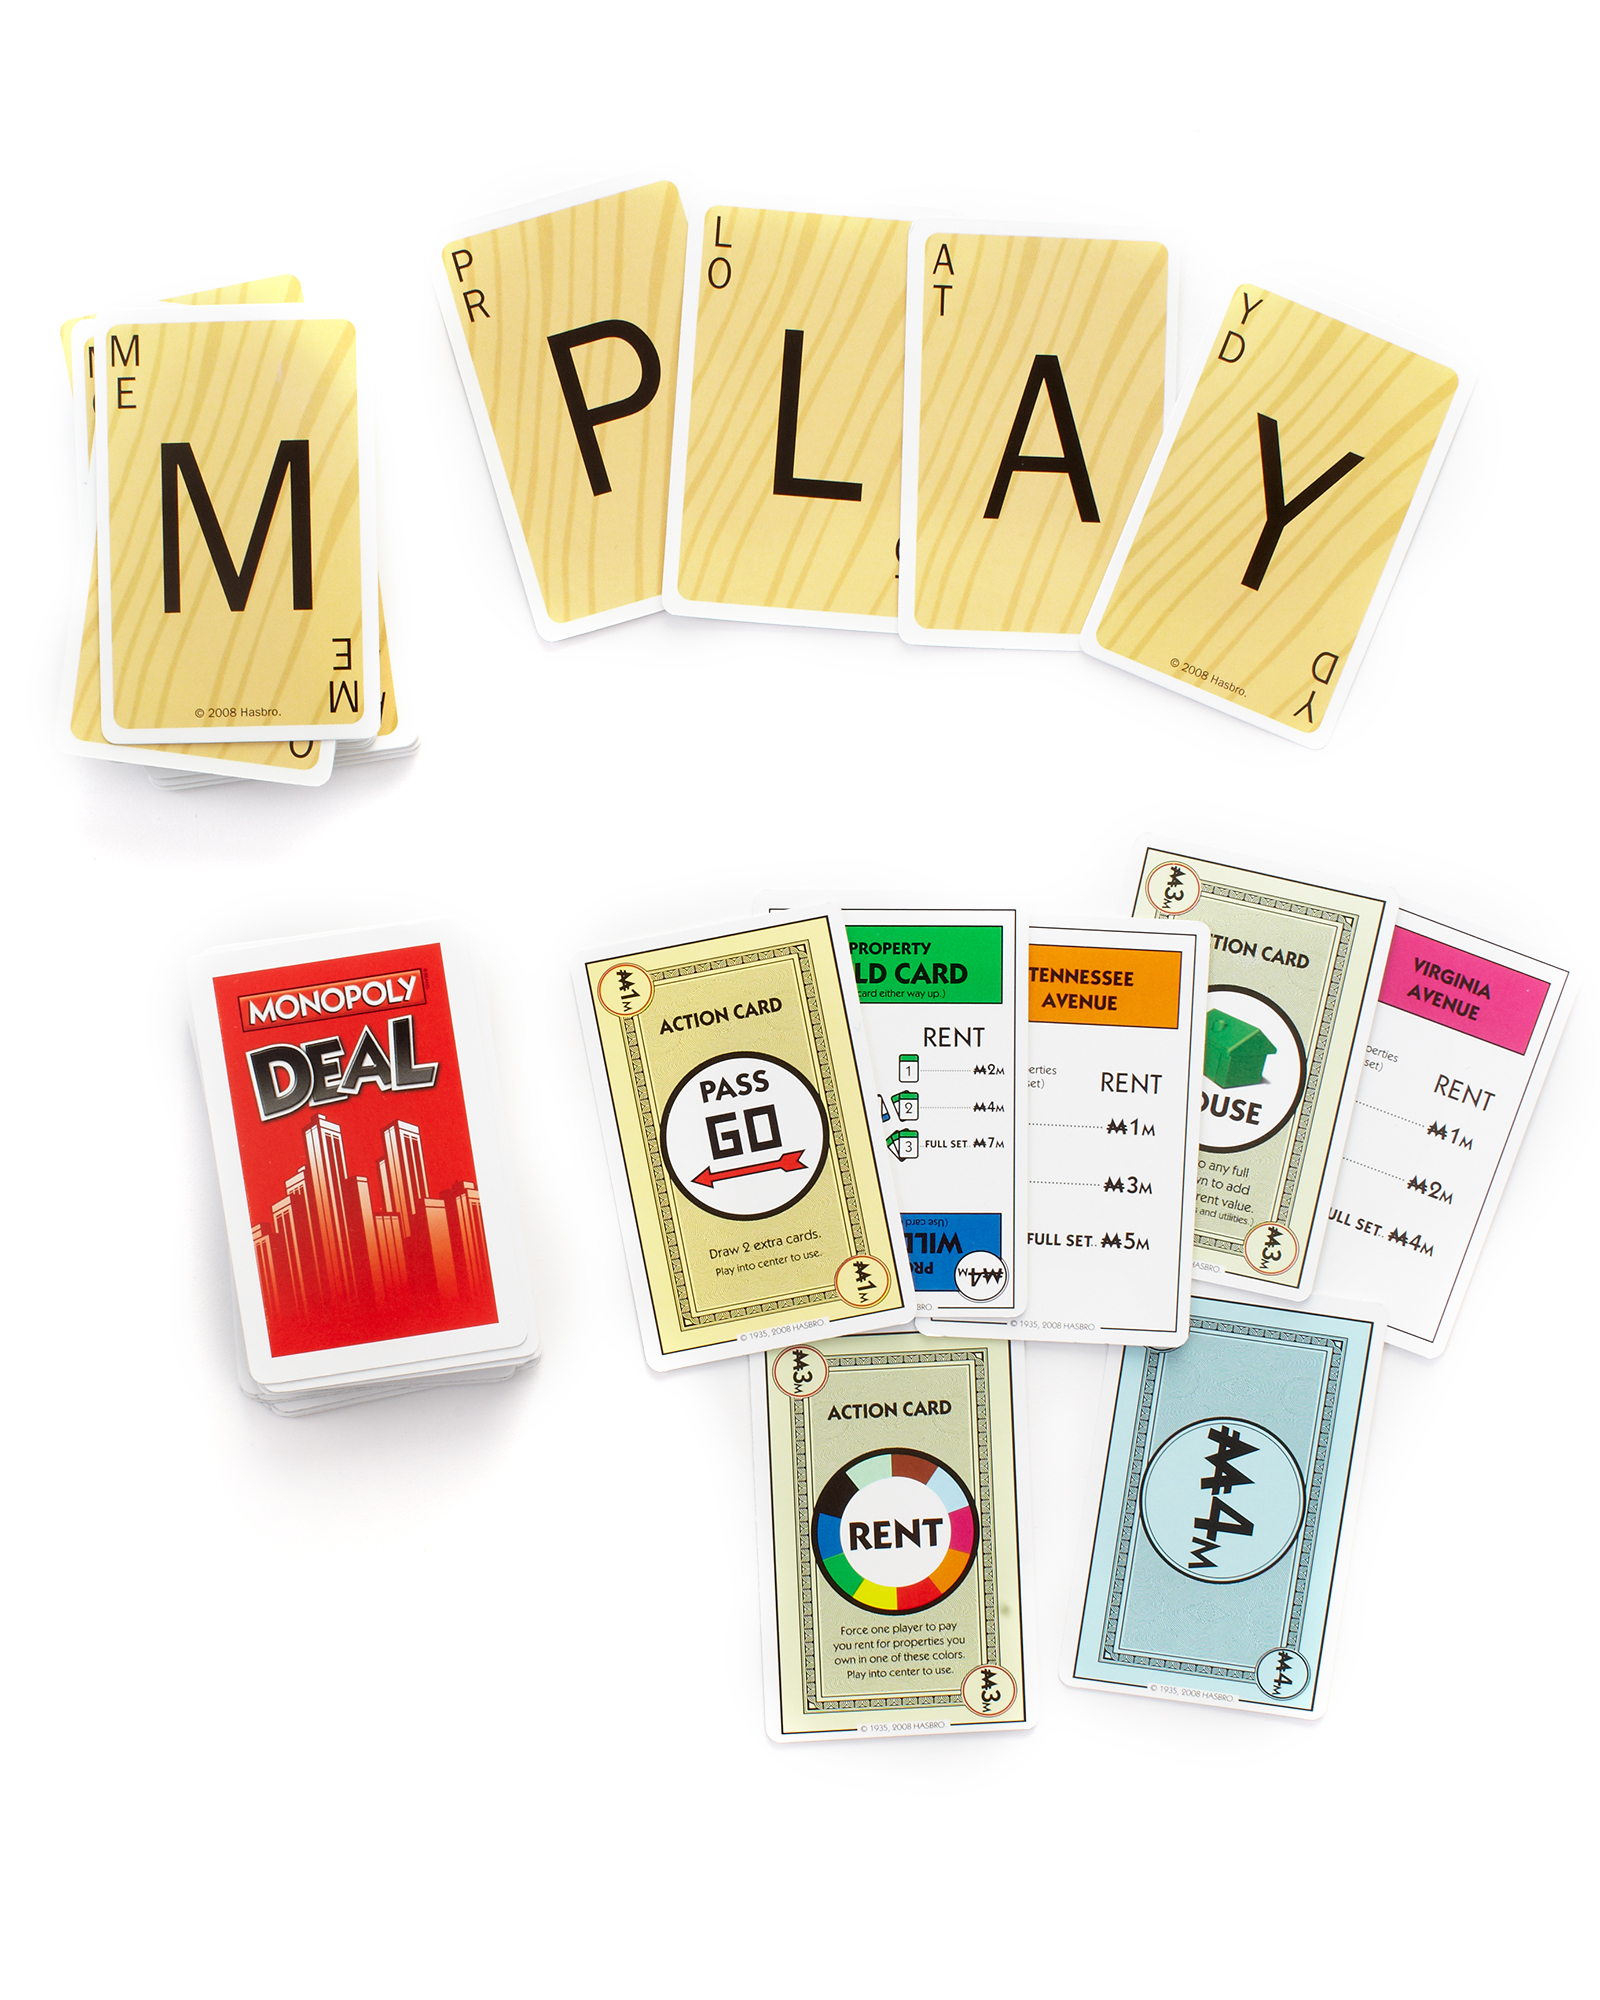 camp-care-package-board-game-cards-wld108705.jpg